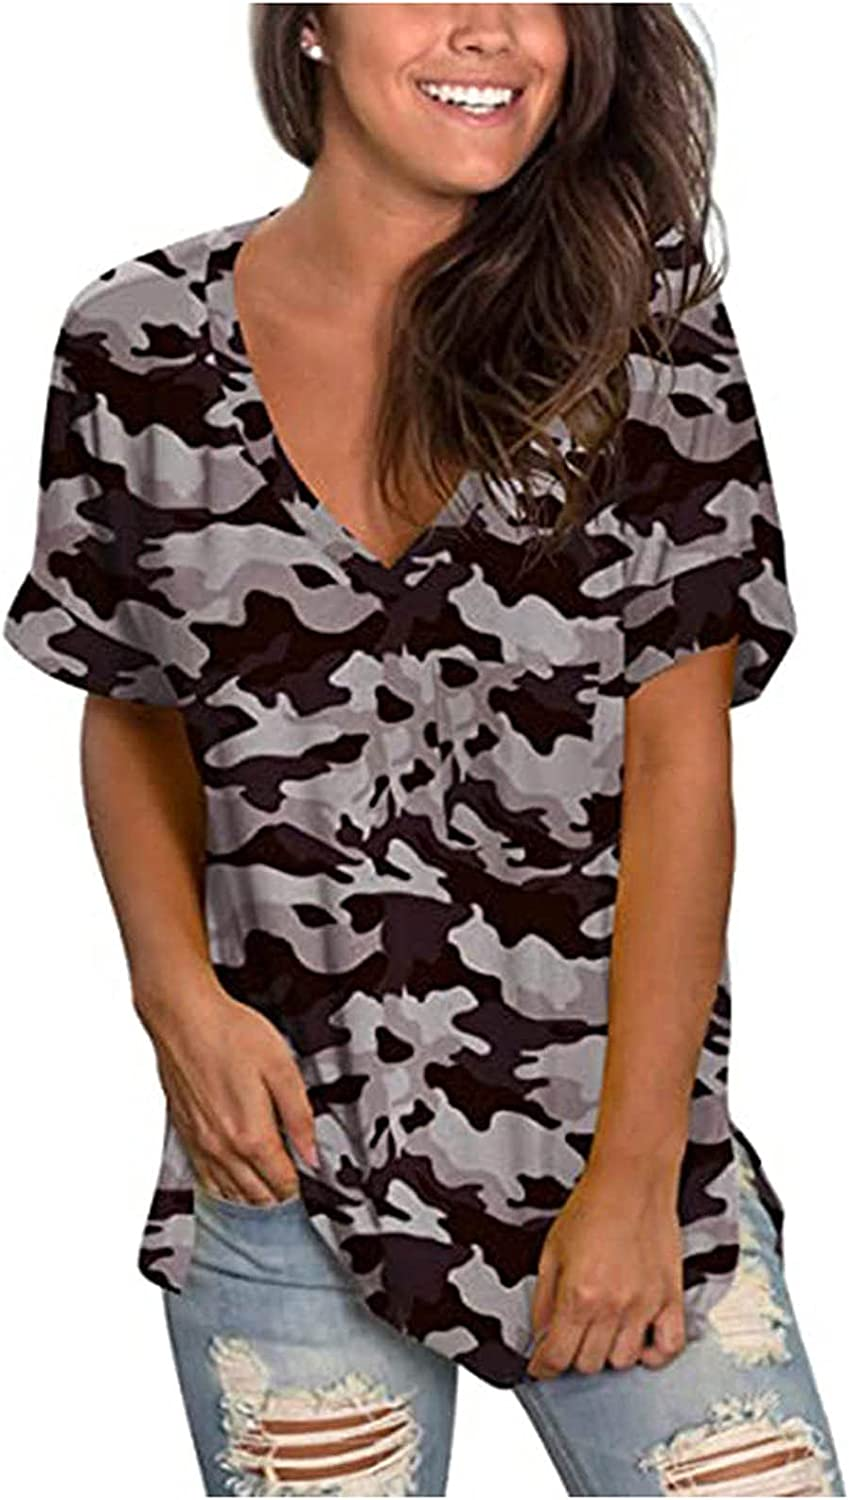 Jaqqra Summer Tops for Women Short Sleeve V Neck Floral Print Flowy T Shirts Casual Loose Blouse Tops Tunic Plus Size